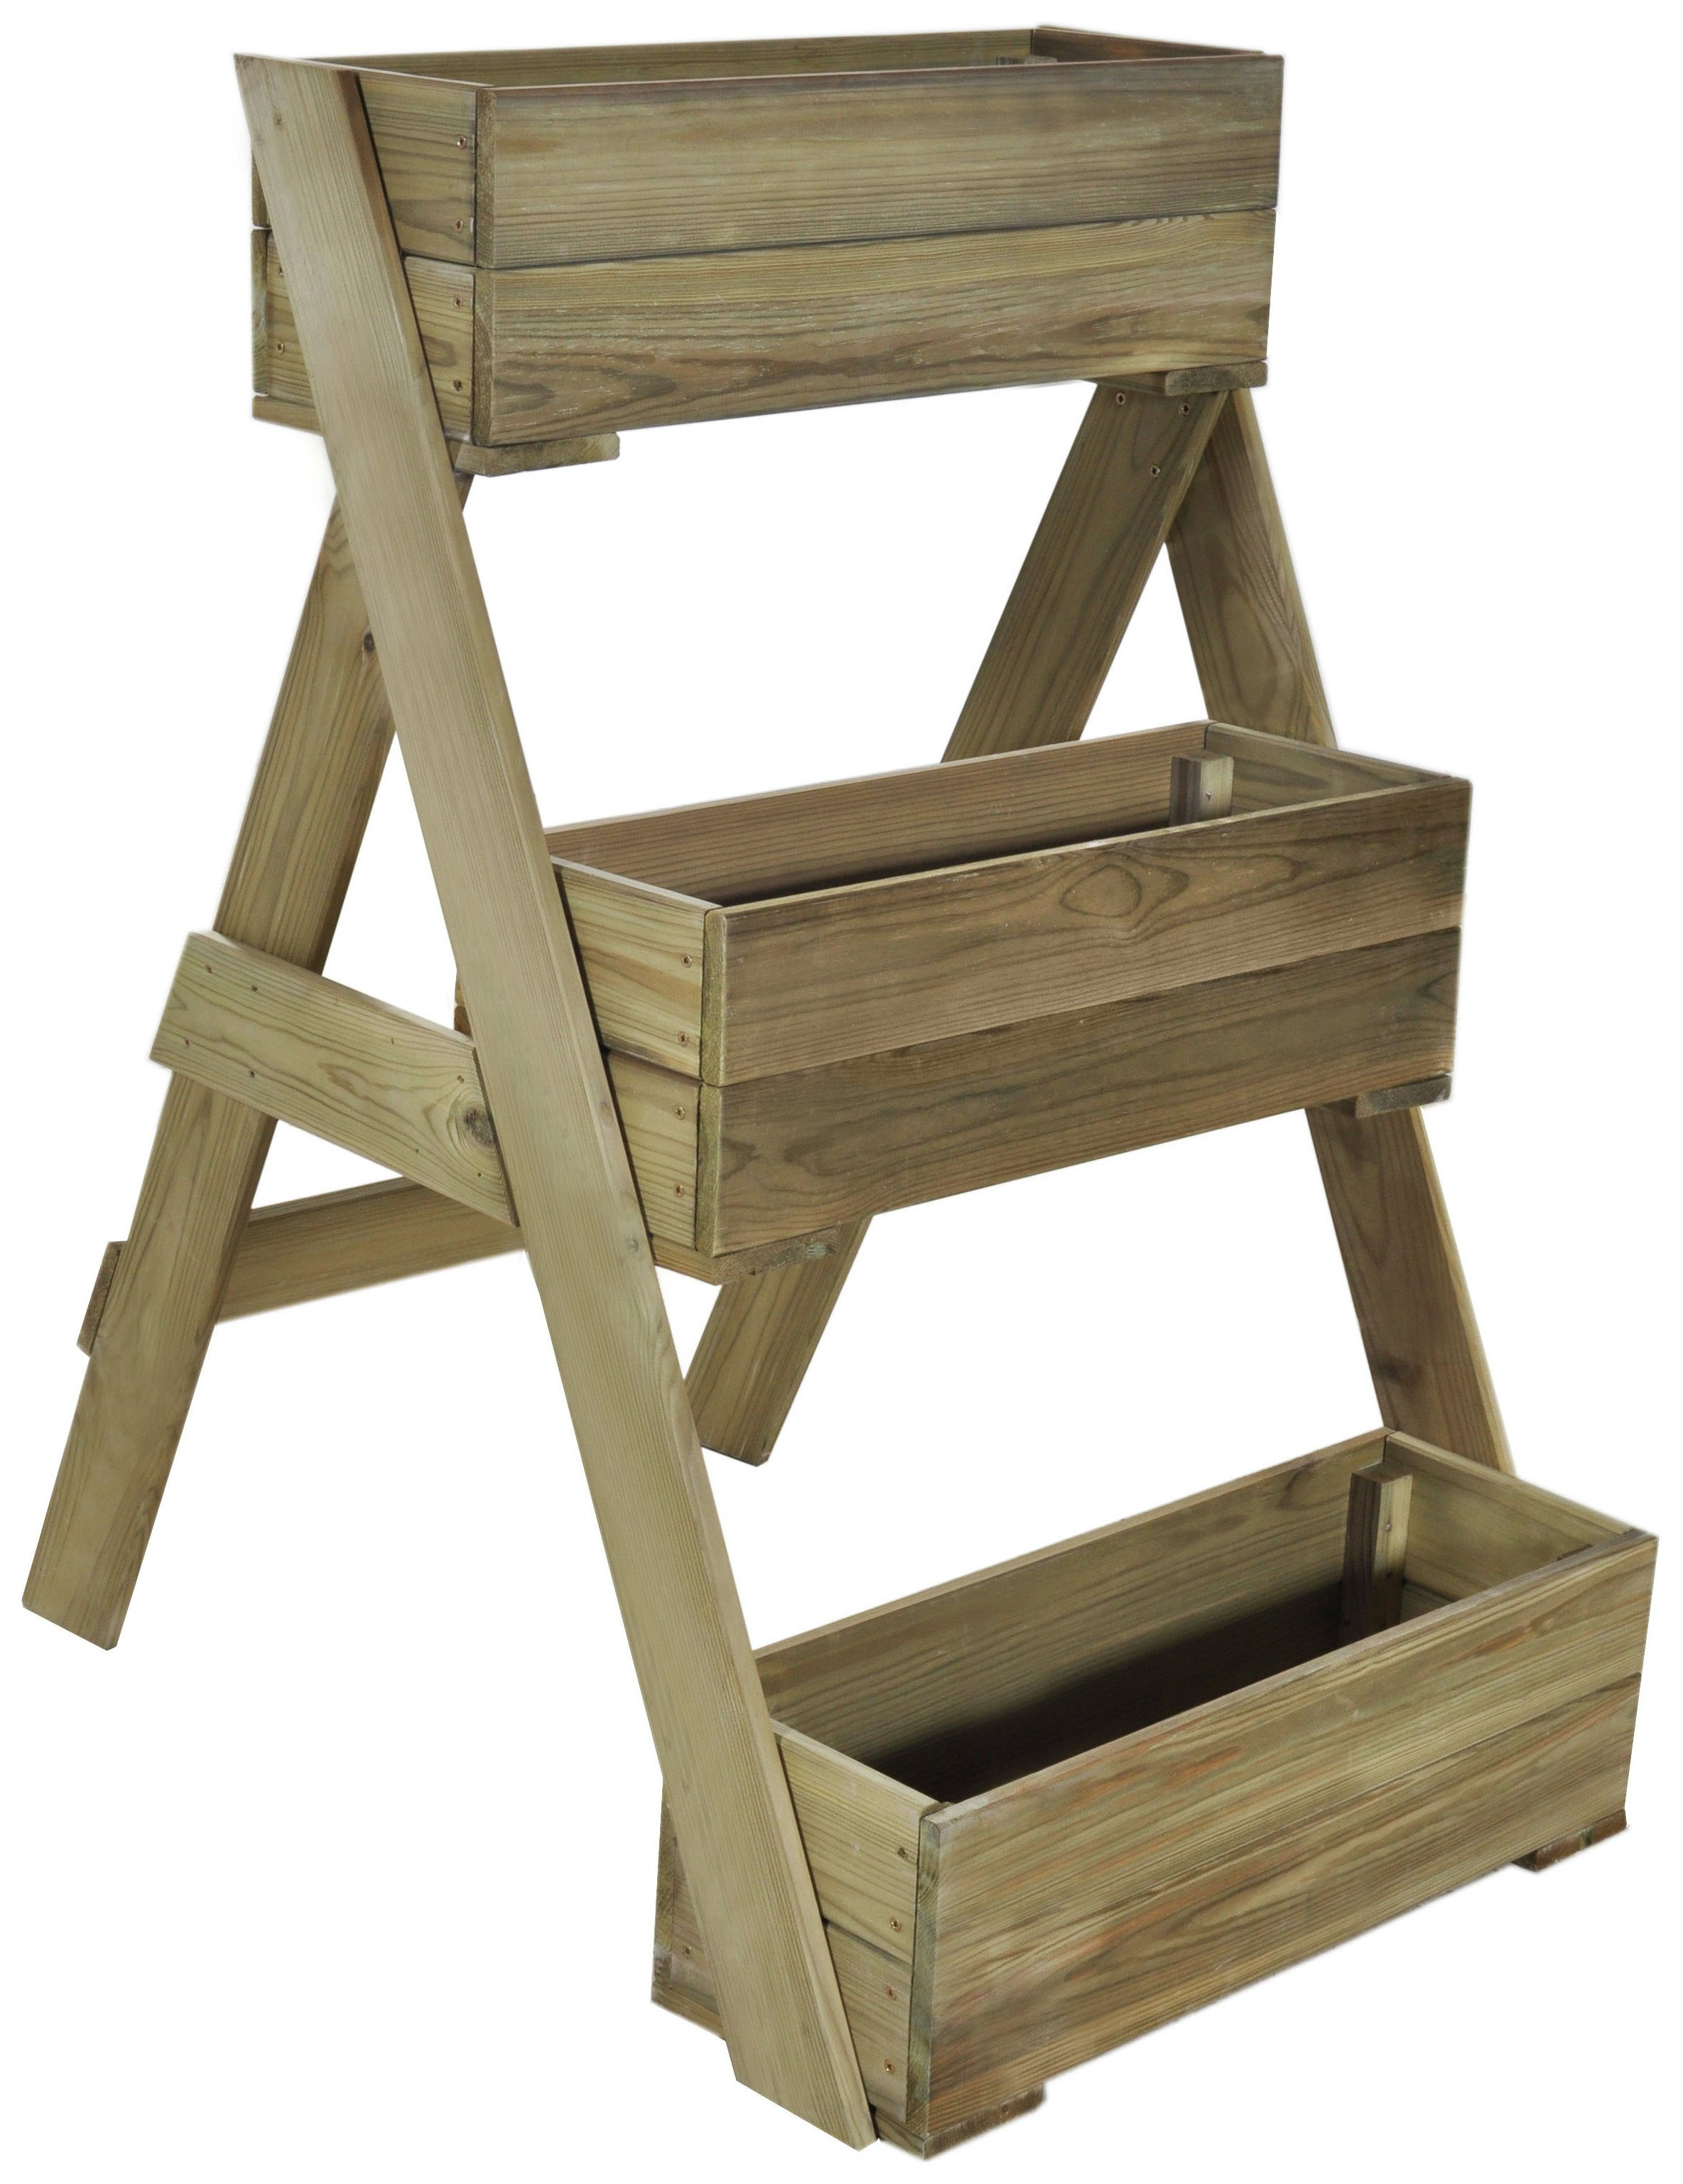 Forest - Compact Cascade Tiered Planter lowest price